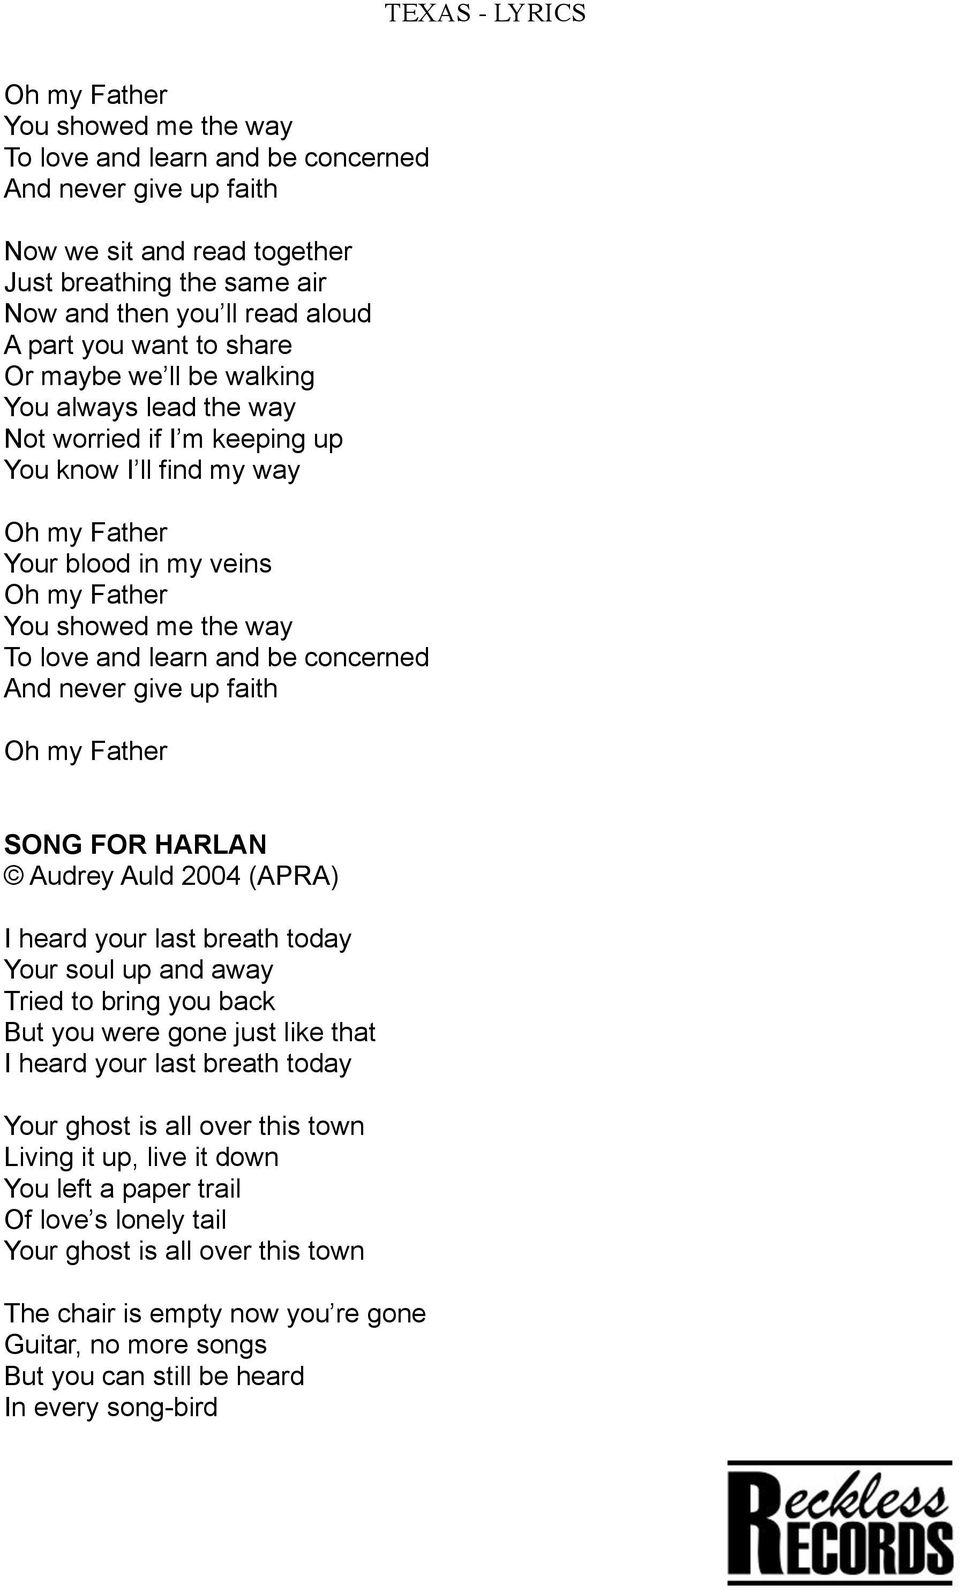 up faith SONG FOR HARLAN Audrey Auld 2004 (APRA) I heard your last breath today Your soul up and away Tried to bring you back But you were gone just like that I heard your last breath today Your